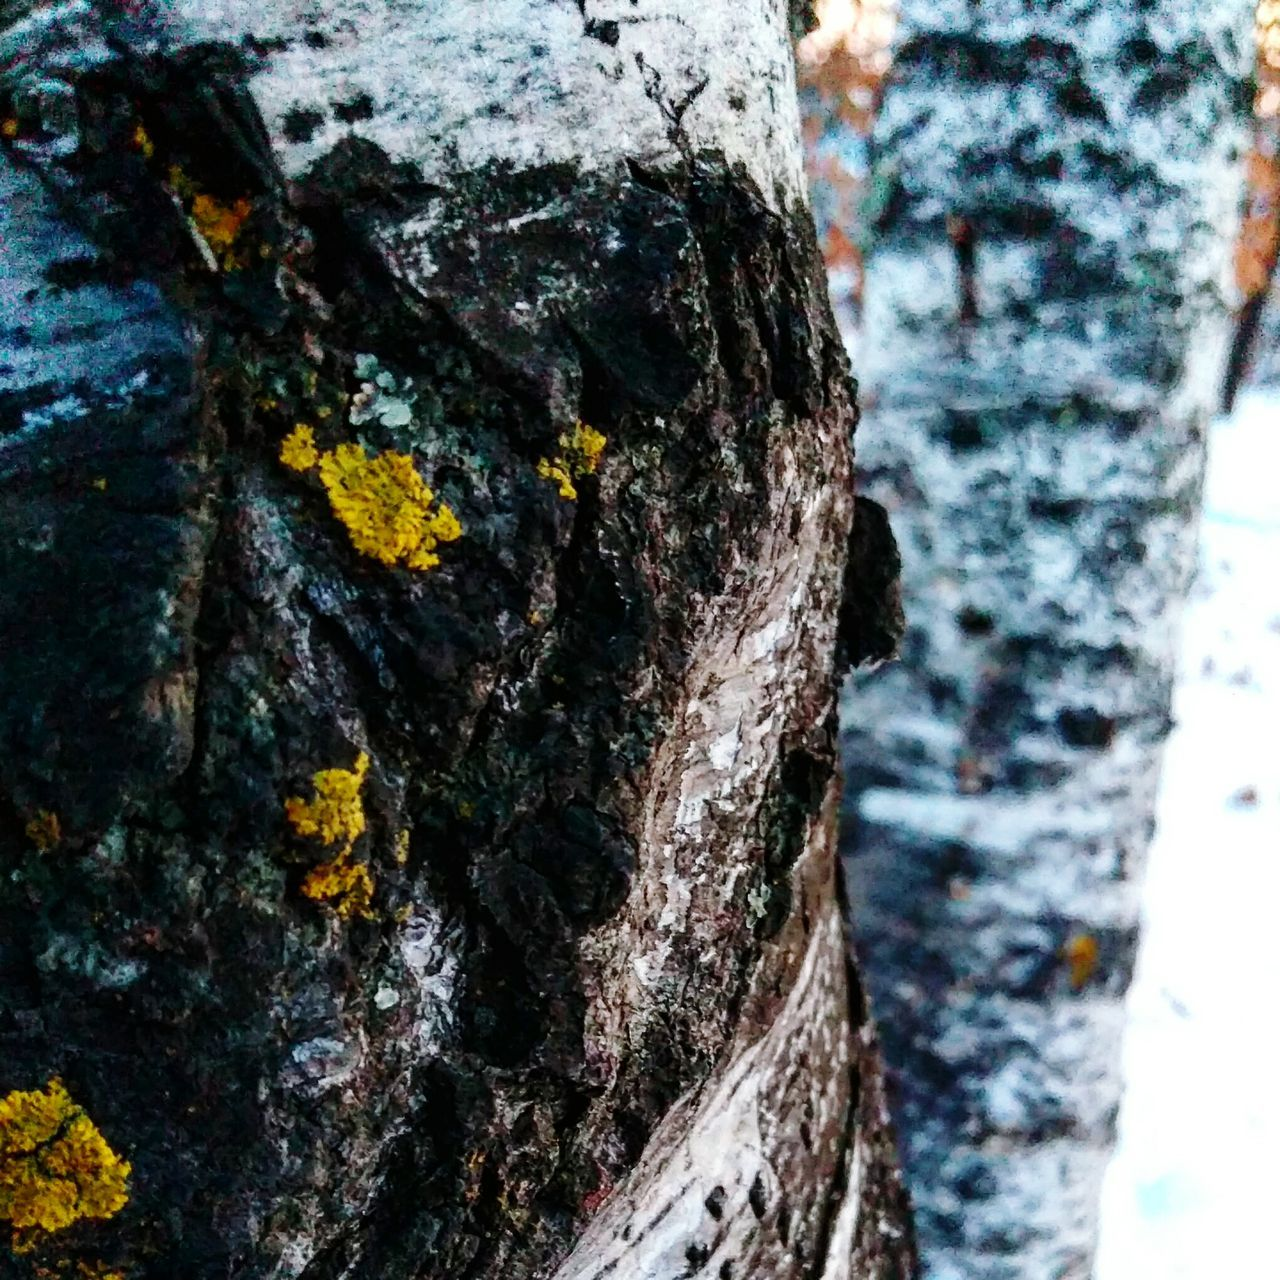 tree trunk, textured, bark, rough, tree, close-up, day, lichen, focus on foreground, nature, weathered, no people, outdoors, wood - material, growth, fungus, beauty in nature, animal themes